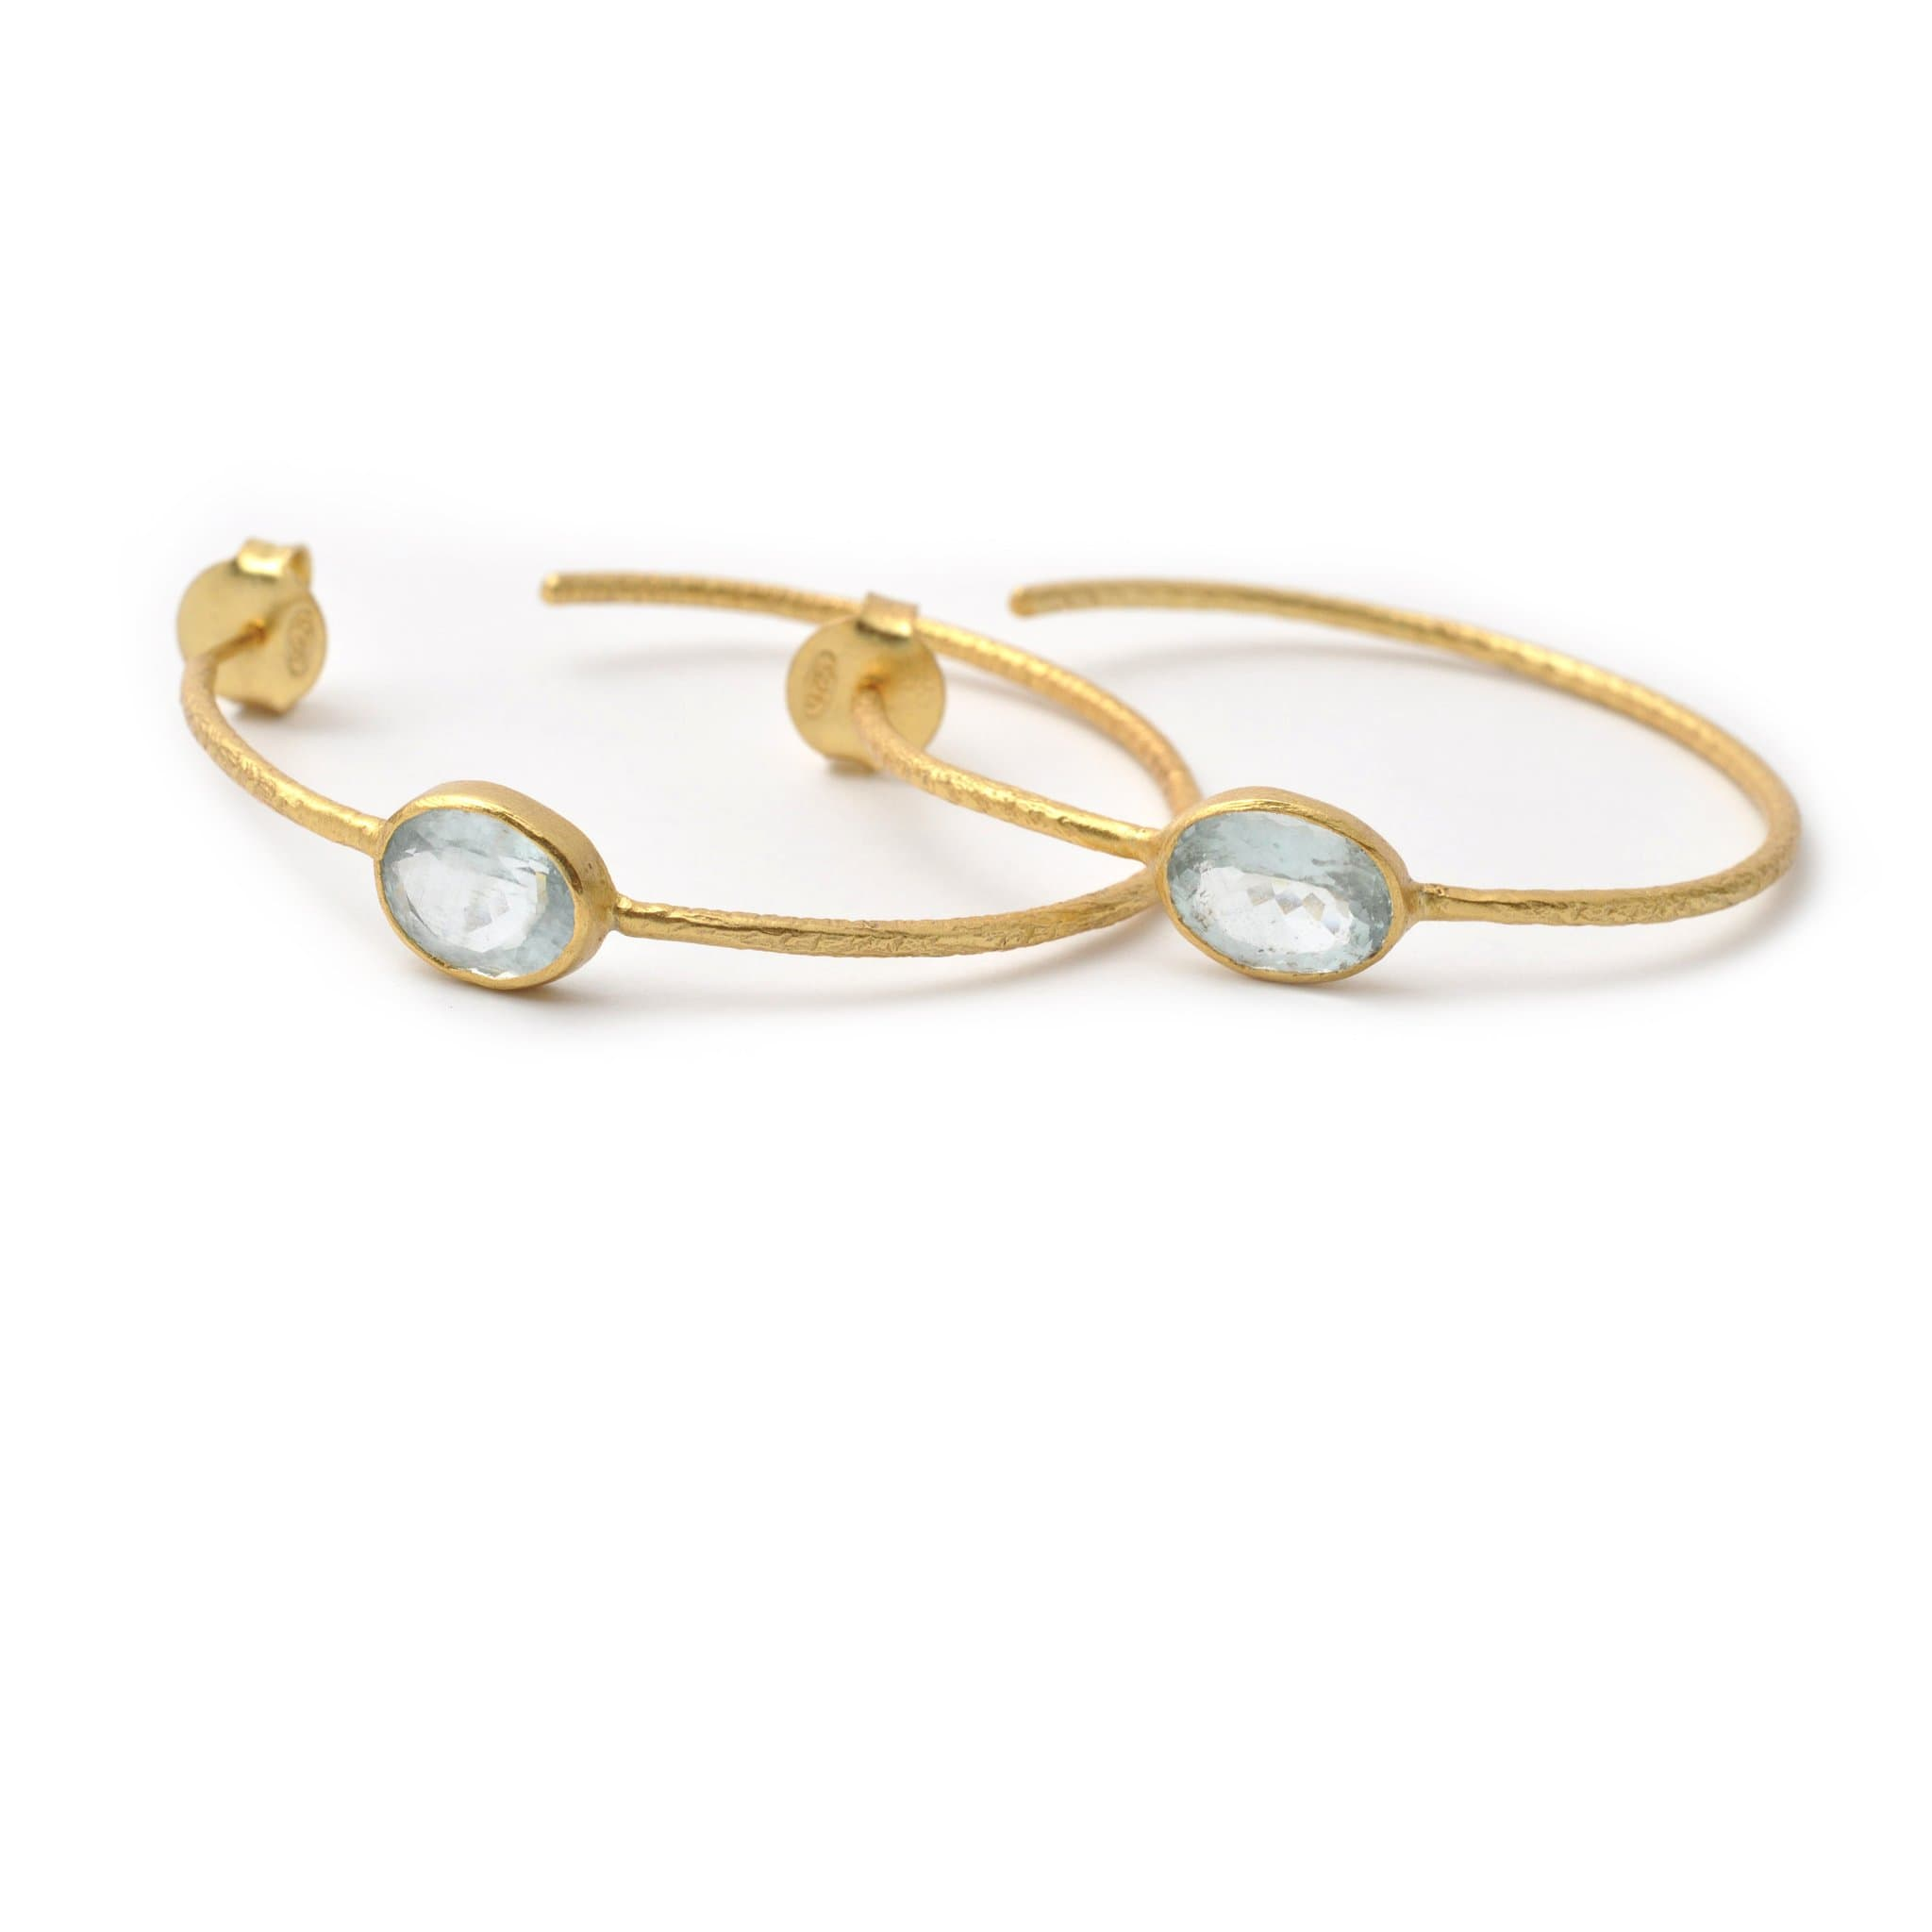 Aquamarine Hoop Earrings - Curated Los Angeles